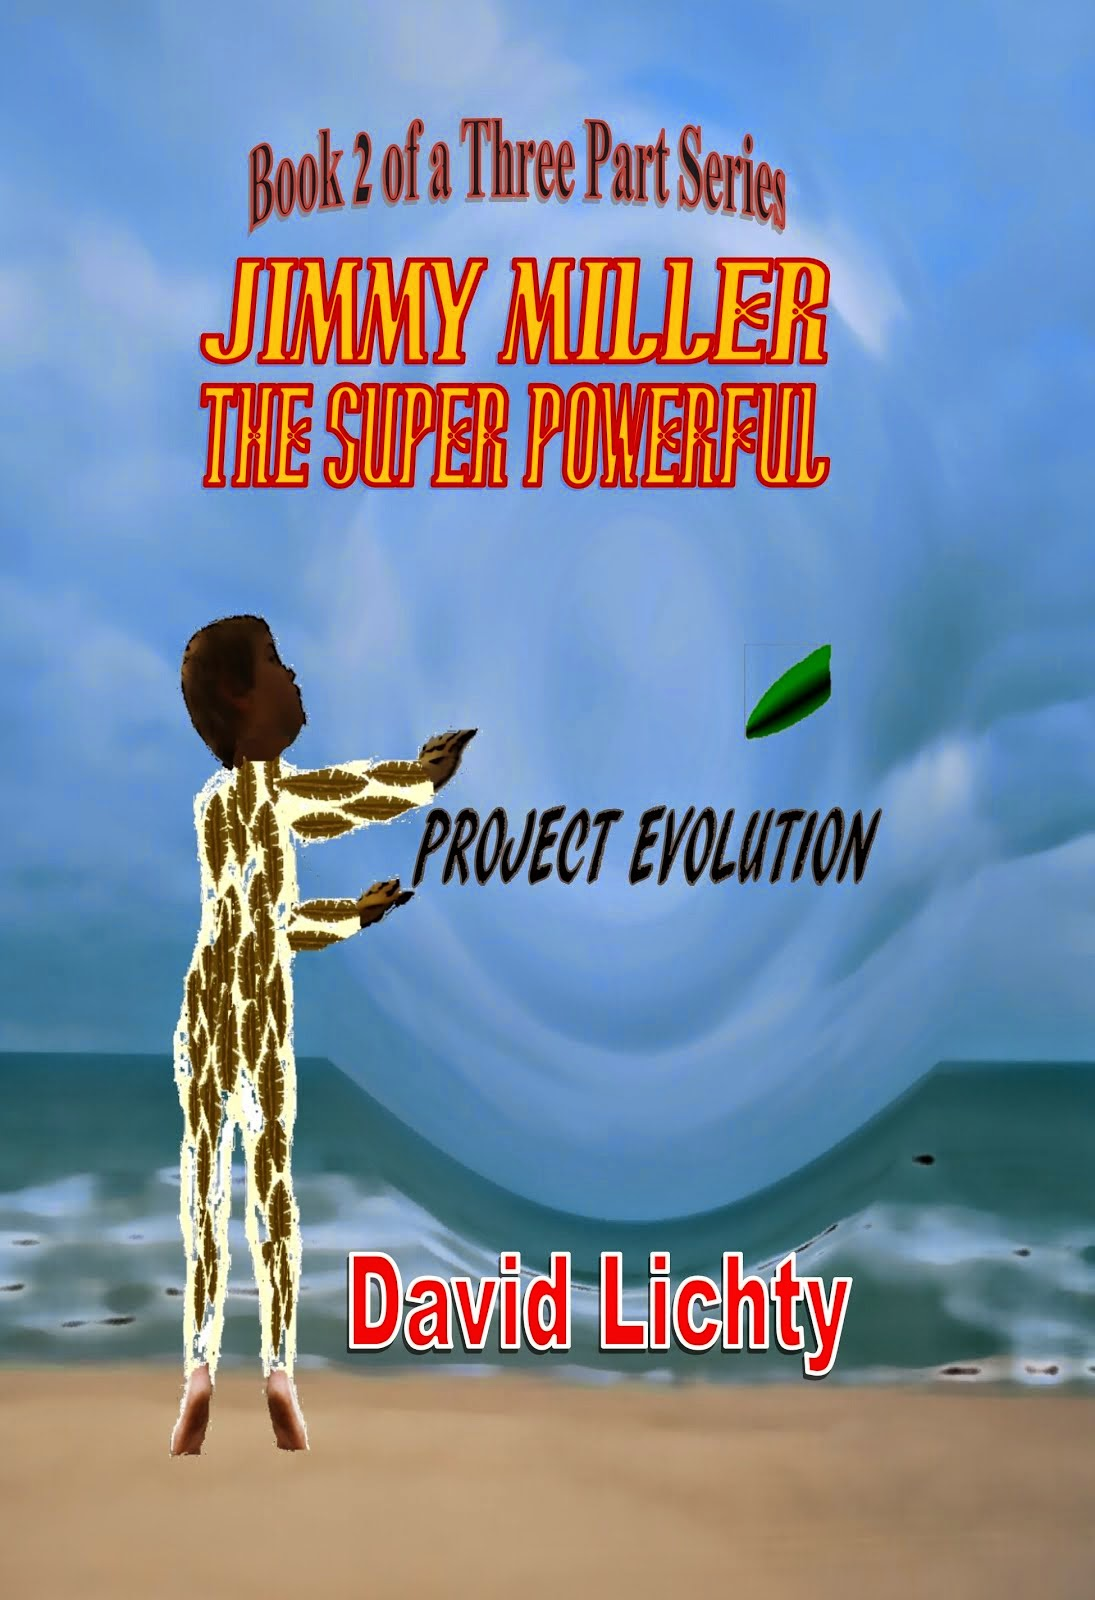 Jimmy Miller the Super Powerful: Project Evolution